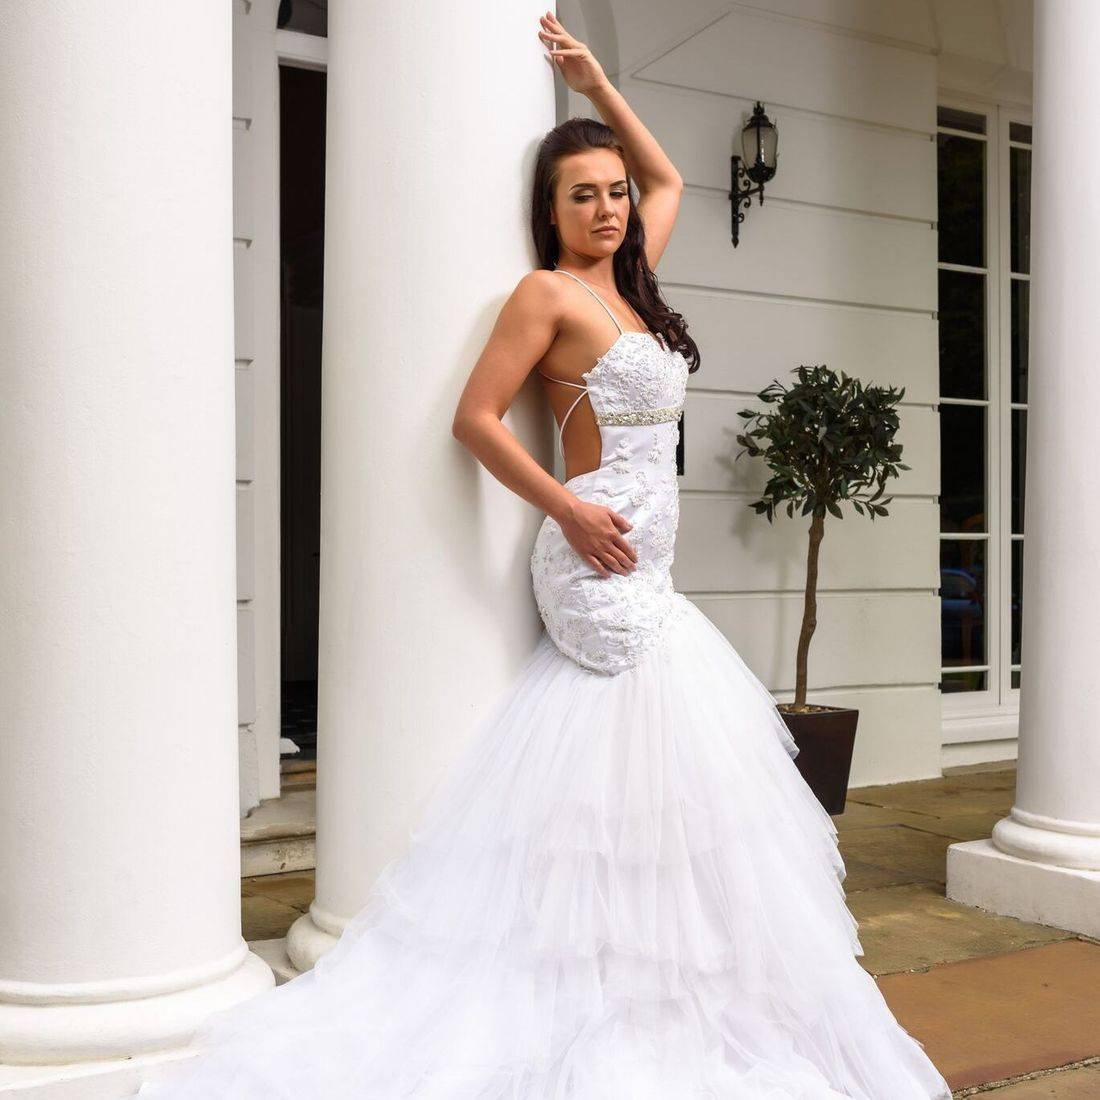 sexy wedding dress, dipped back wedding dress,   open back wedding dress, wedding dresses with spaghetti straps, layered skirt wedding dress